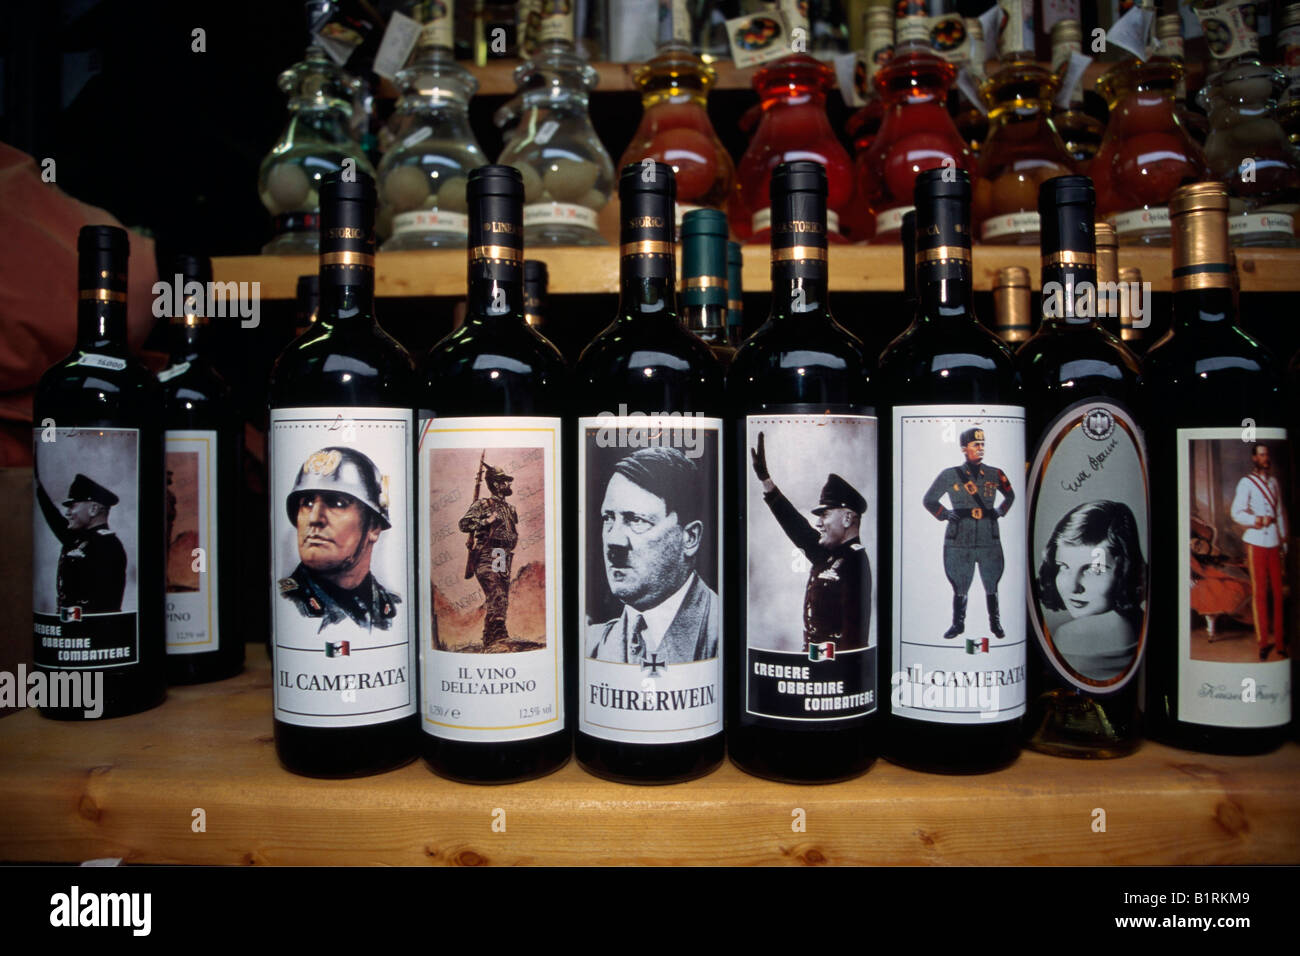 Wine bottles with Nazi labels, Osteria, Lake Garda, Italy - Stock Image